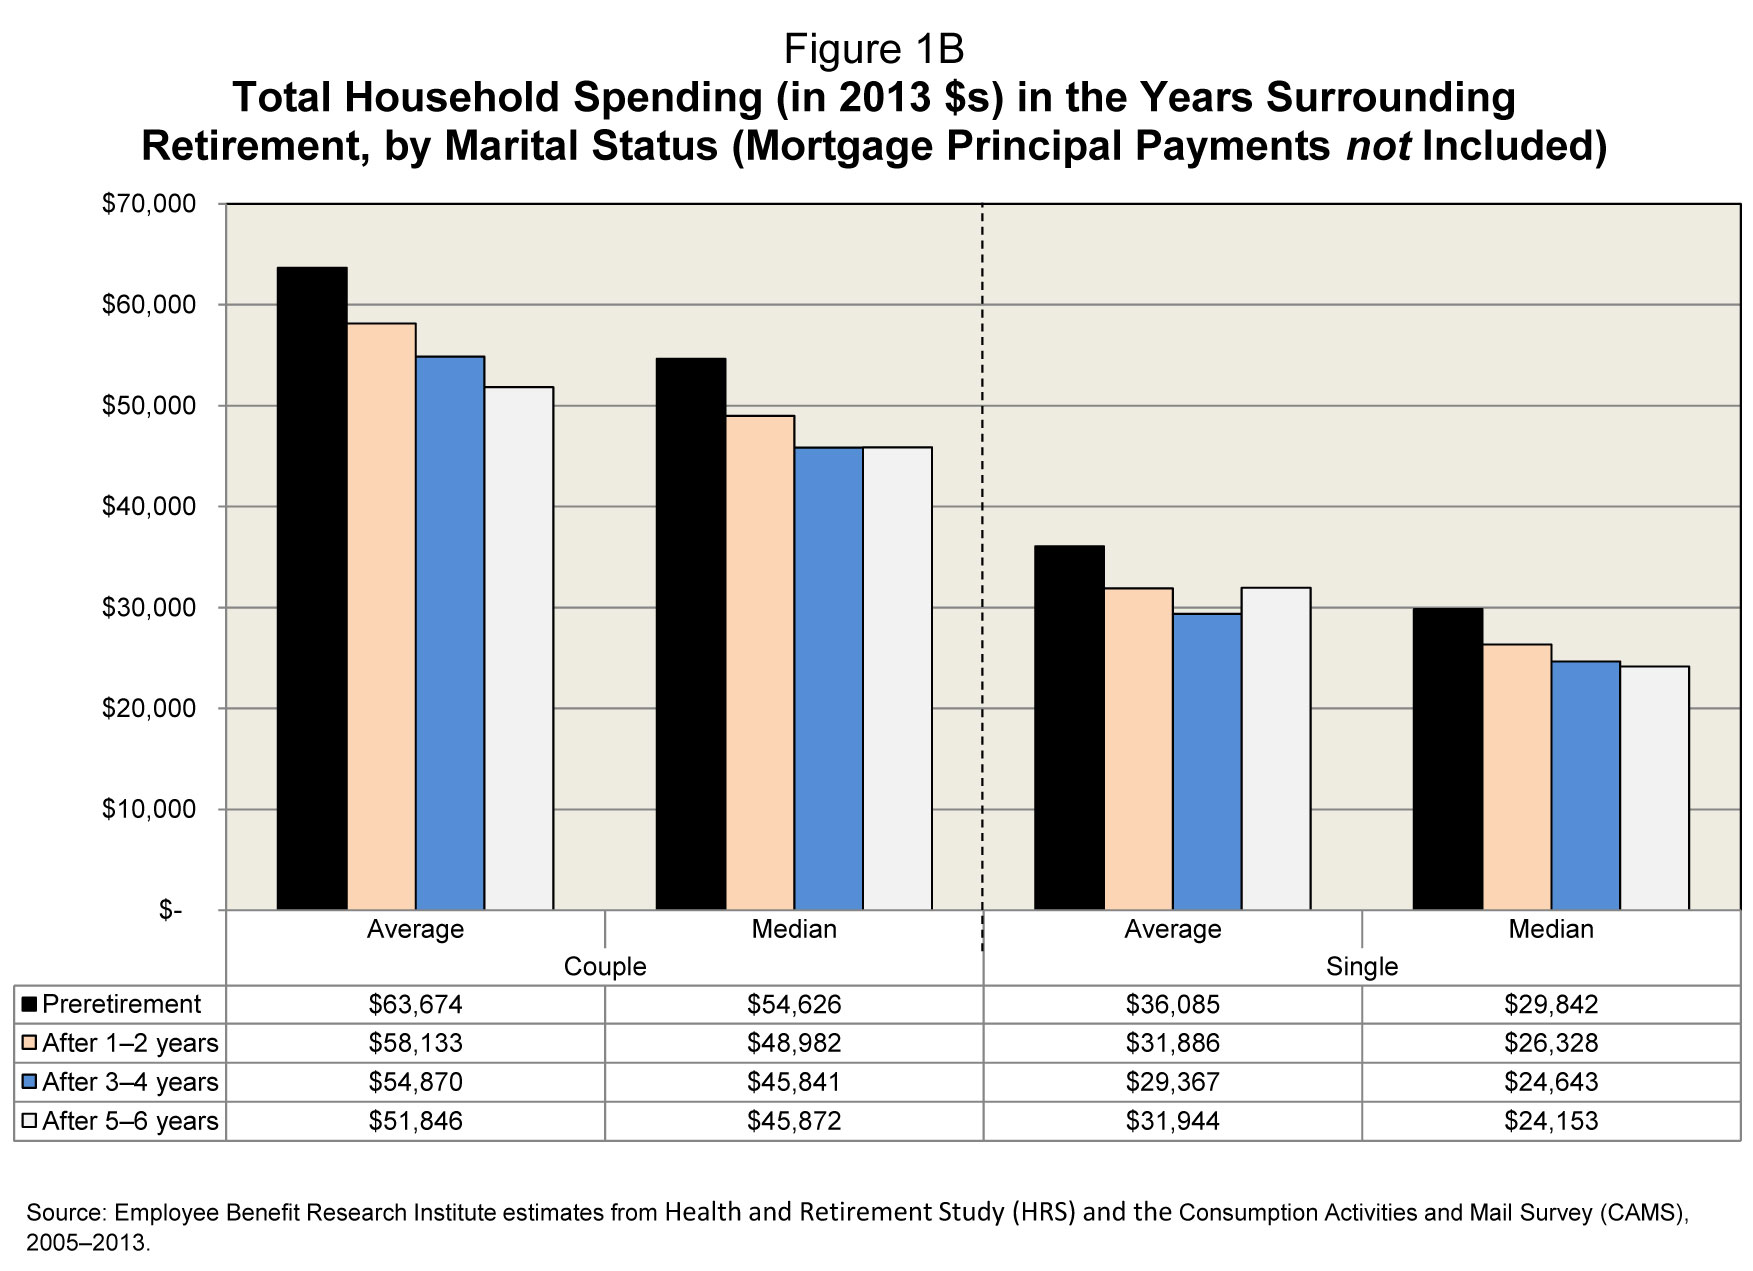 Total Household Spending